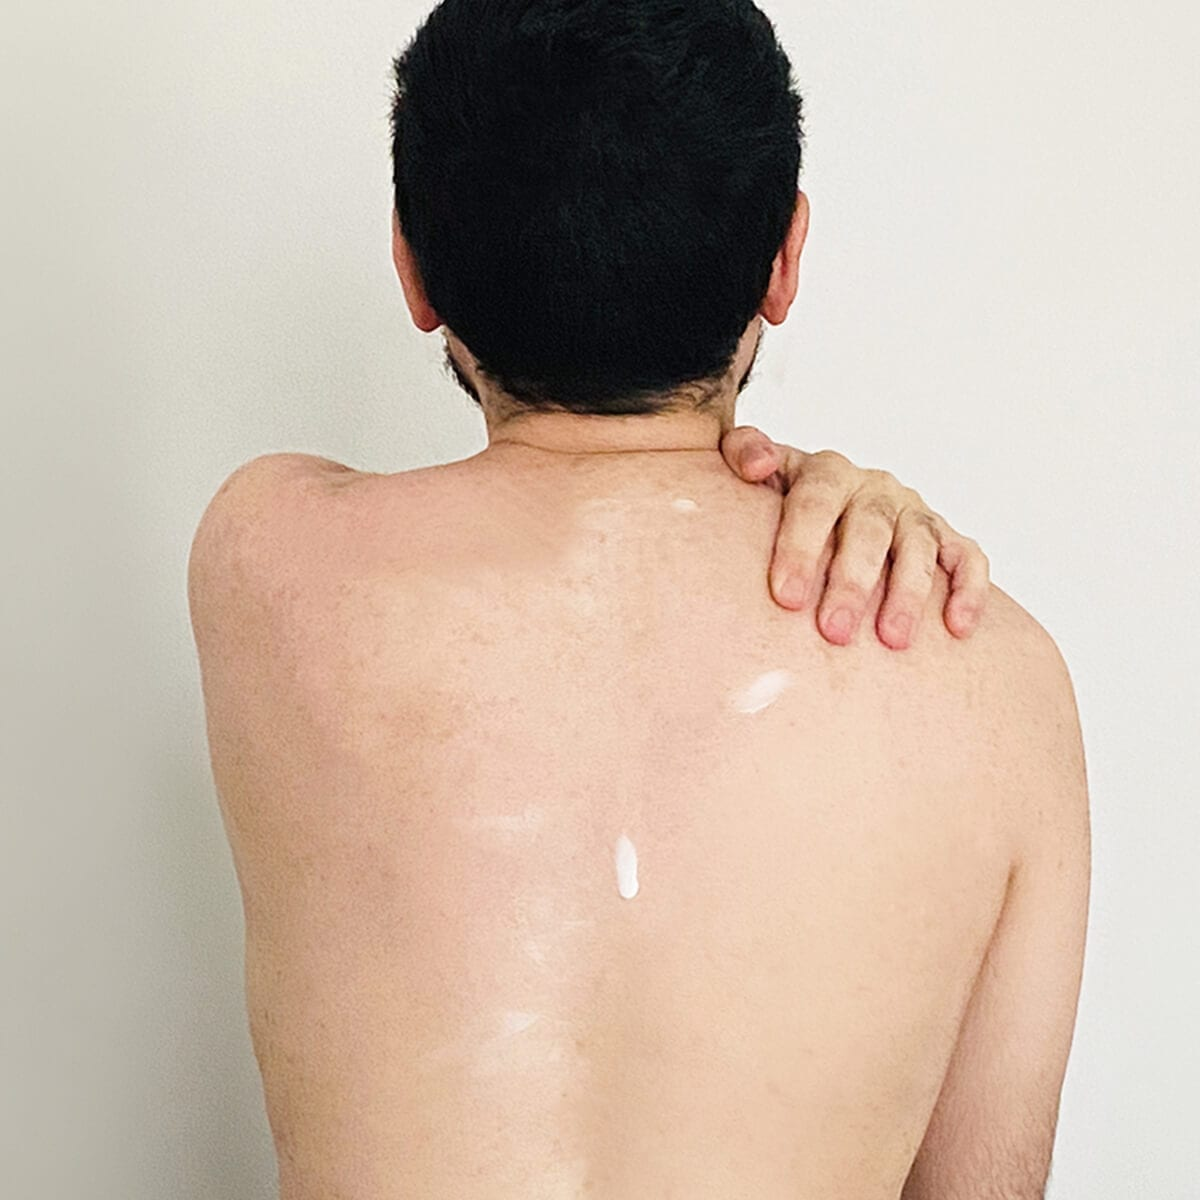 How to Put Lotion on Your Own Back: 6 Simple Methods